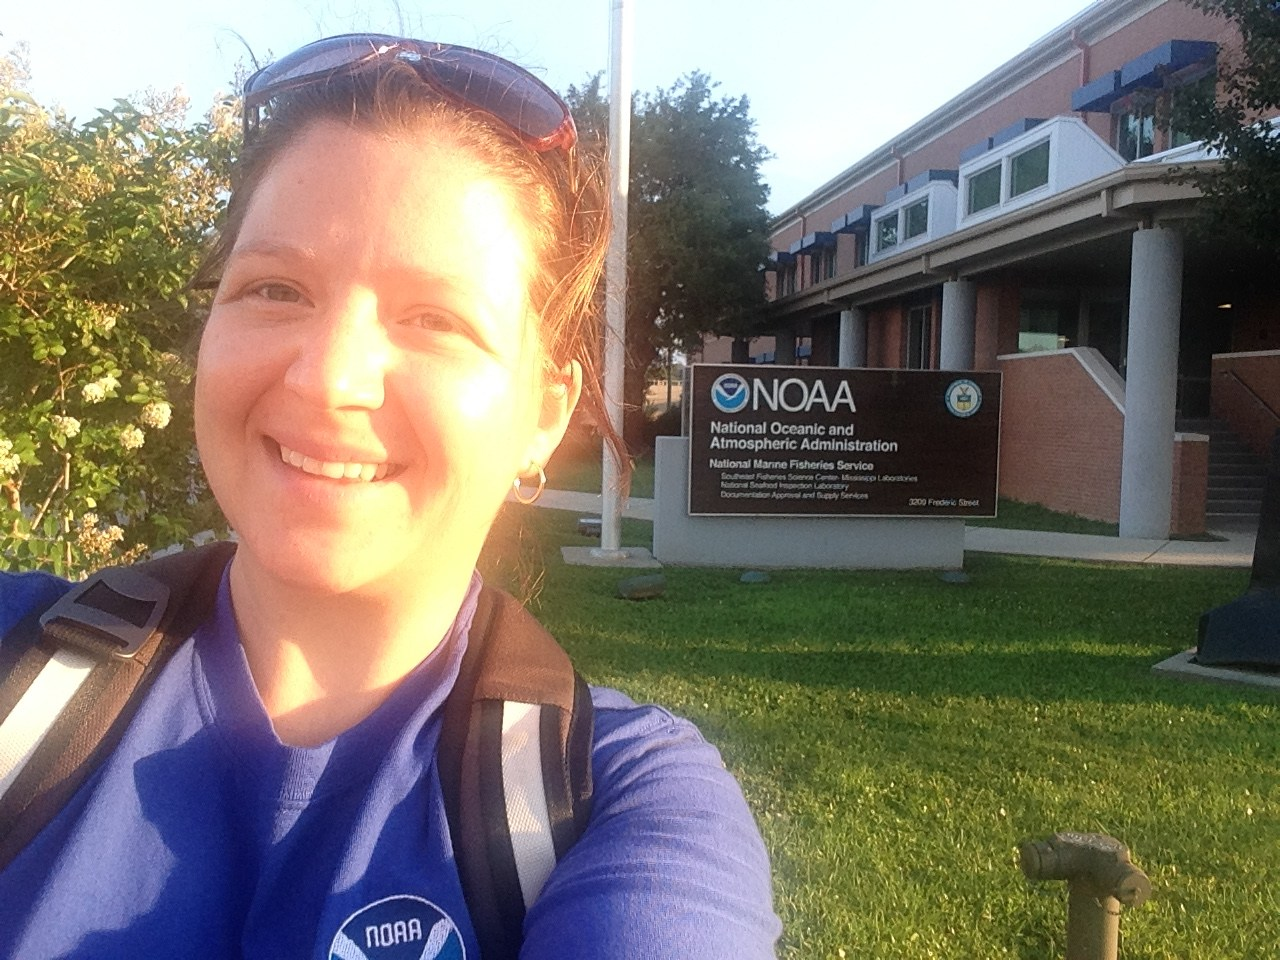 Me oustide the NOAA lab in Pascagoula, Mississippi.